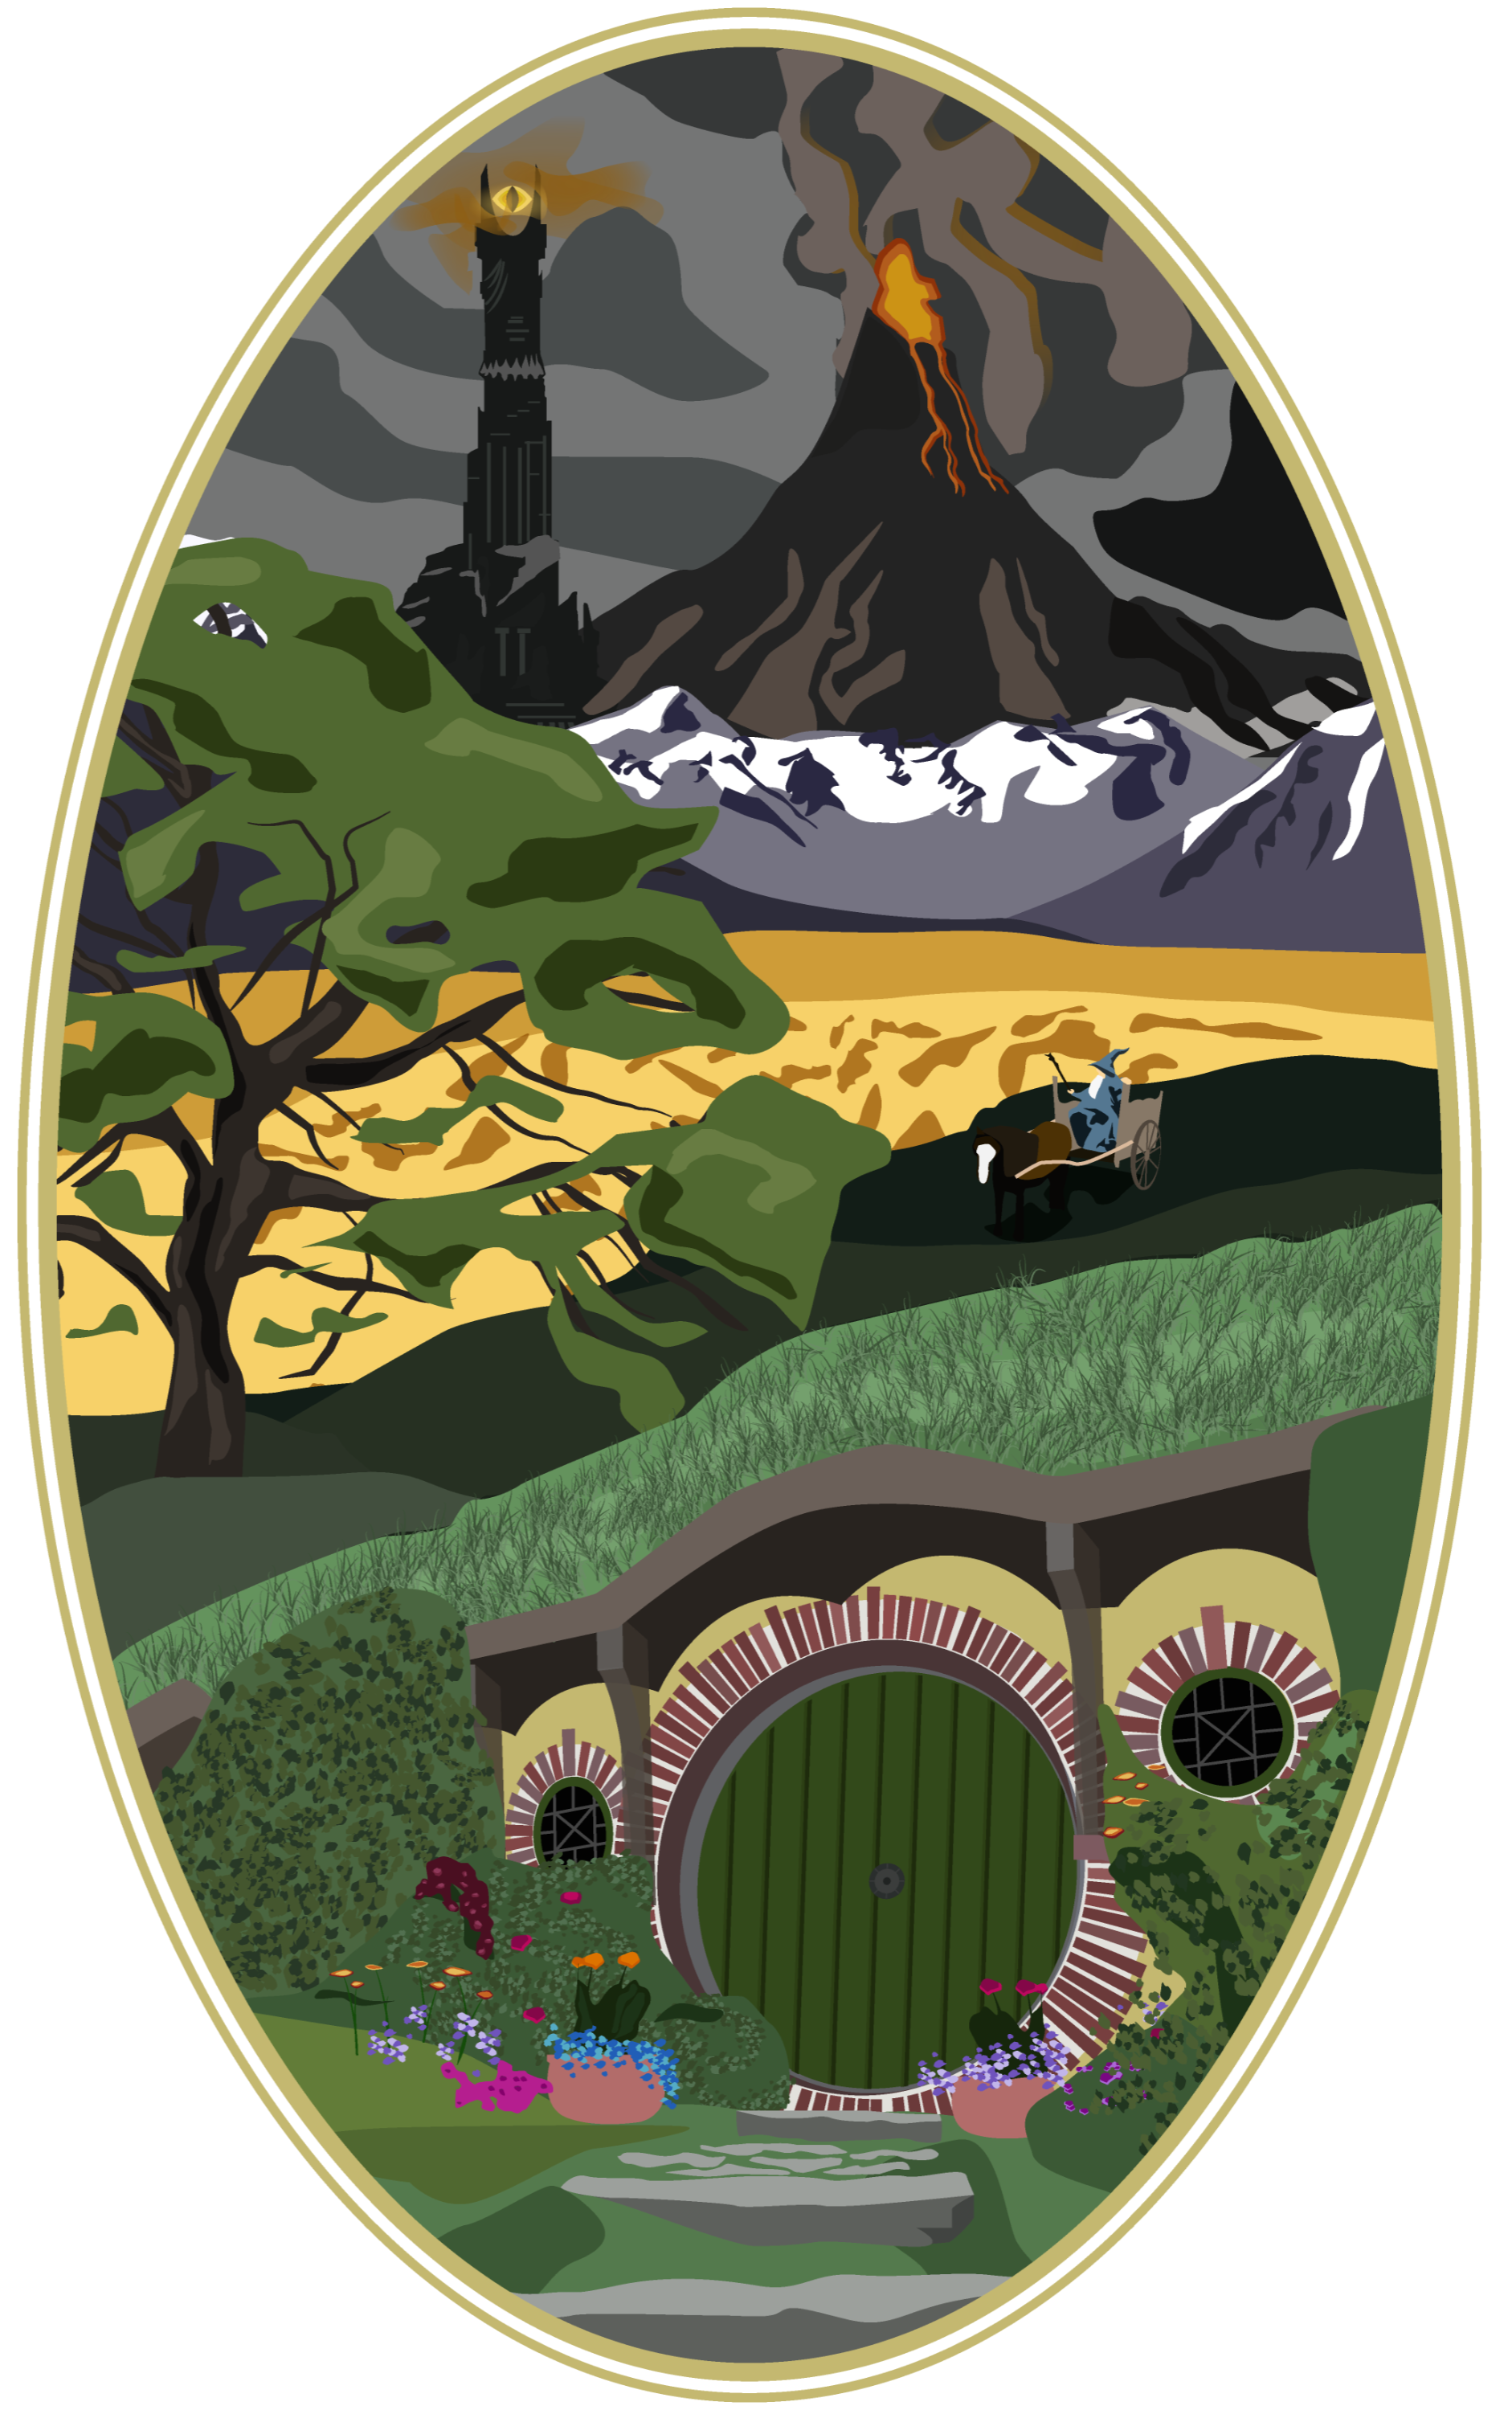 Lord of the Rings   Series pt. 1